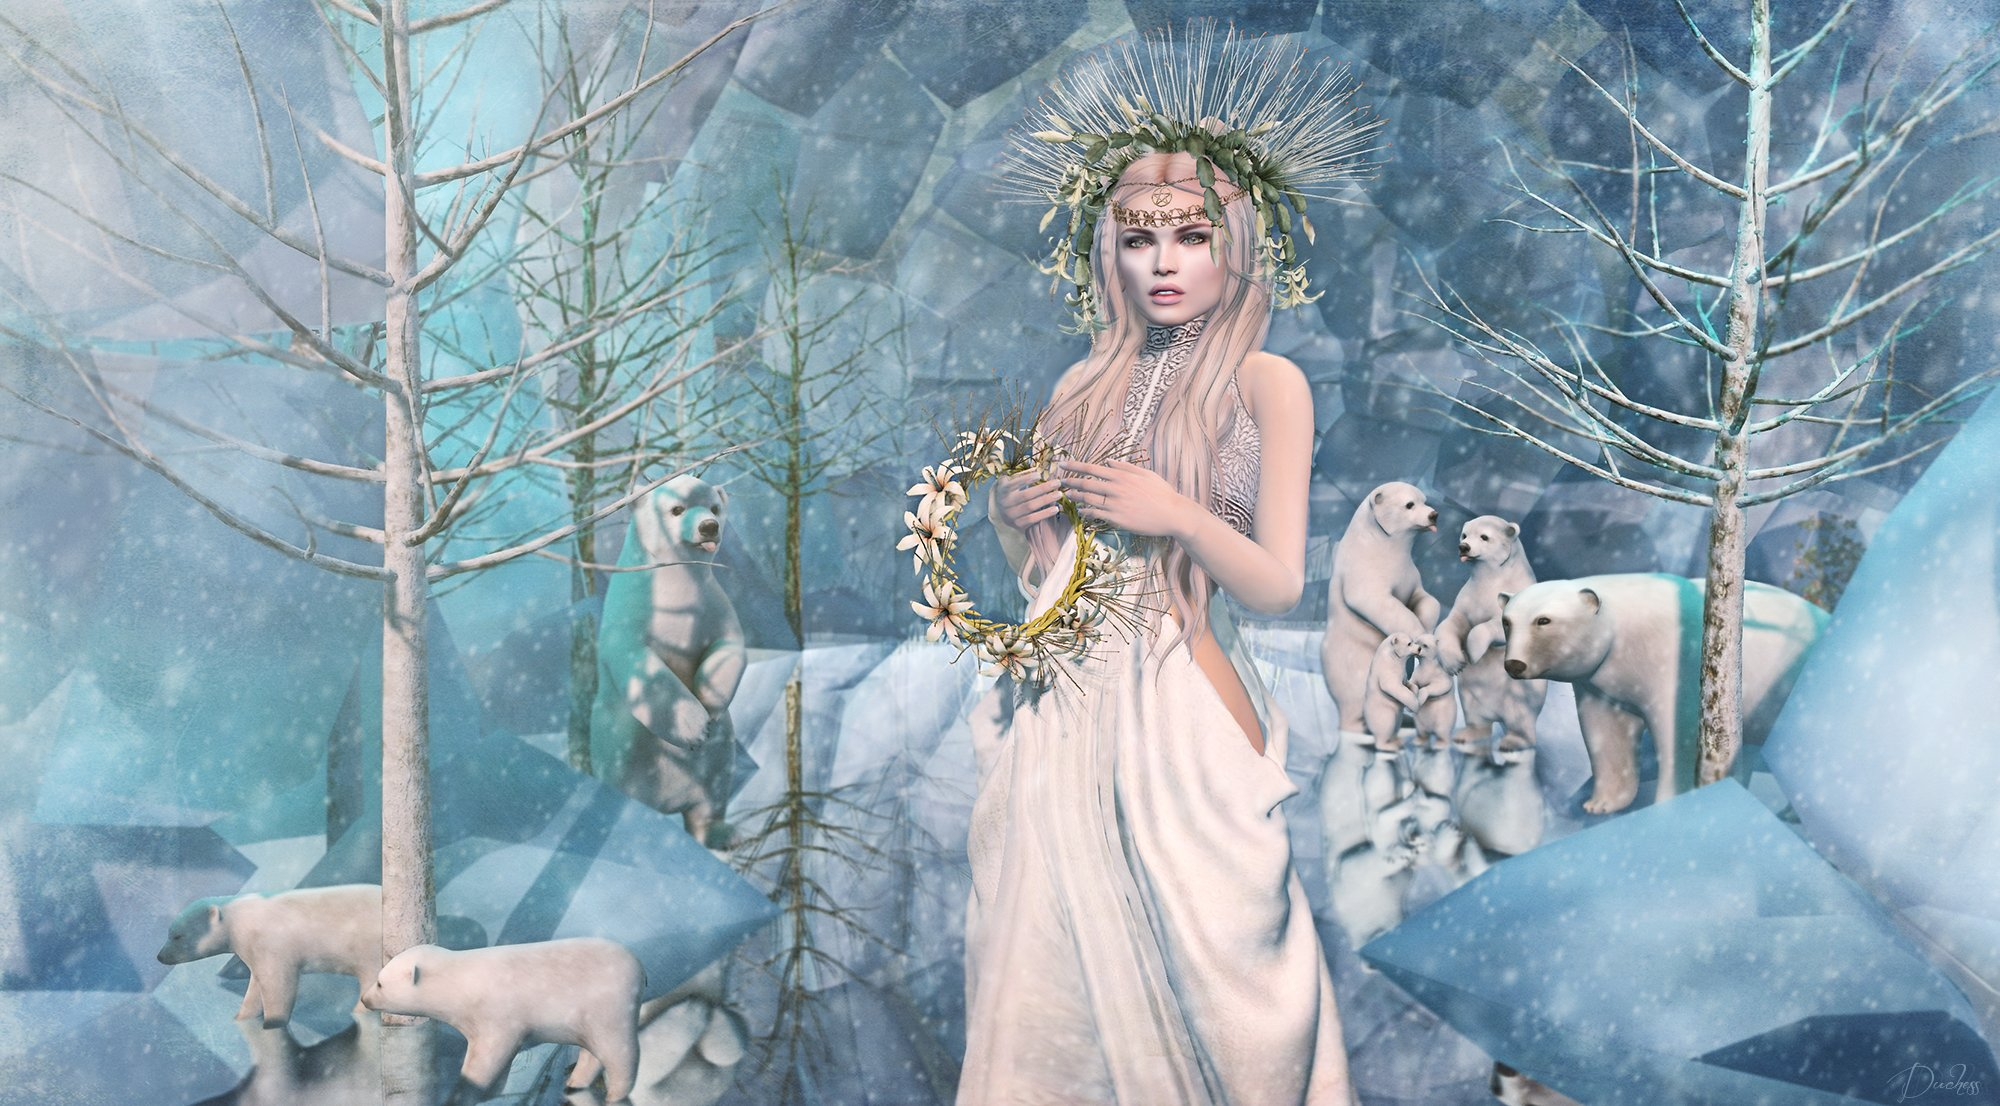 a-winter-solstice-in-the-mystic-realms